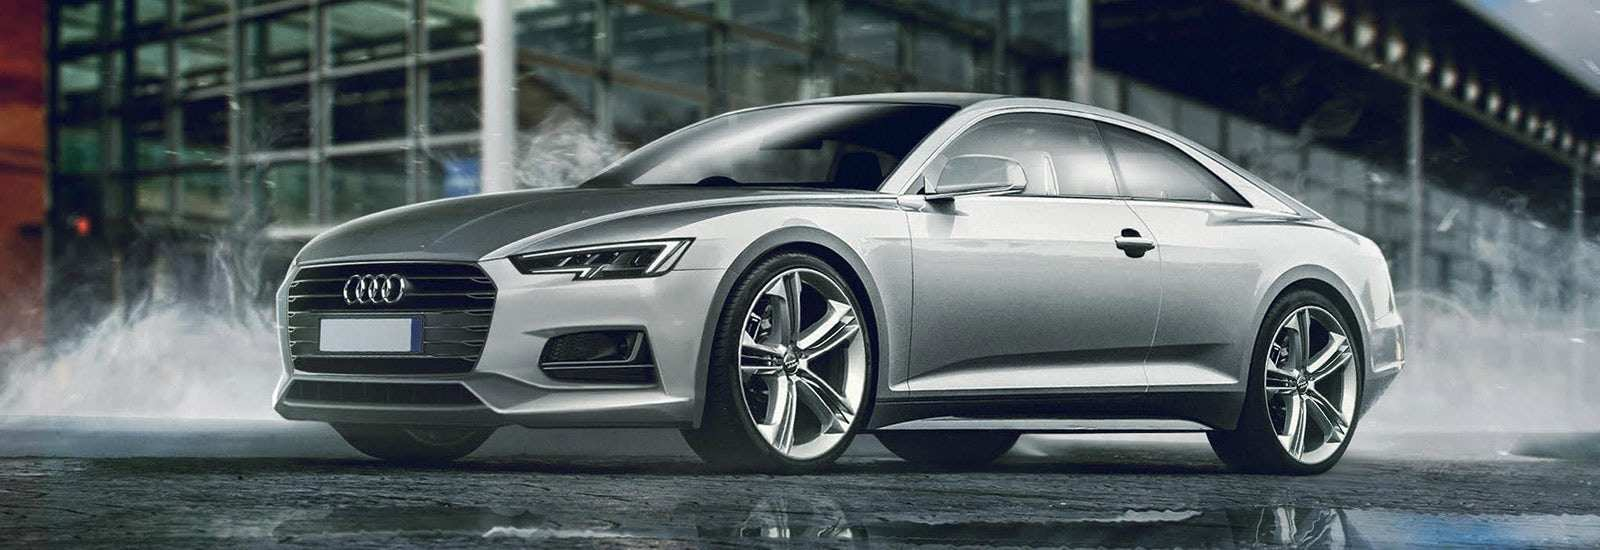 21 New 2020 Audi A9 C E Tron Price with 2020 Audi A9 C E Tron